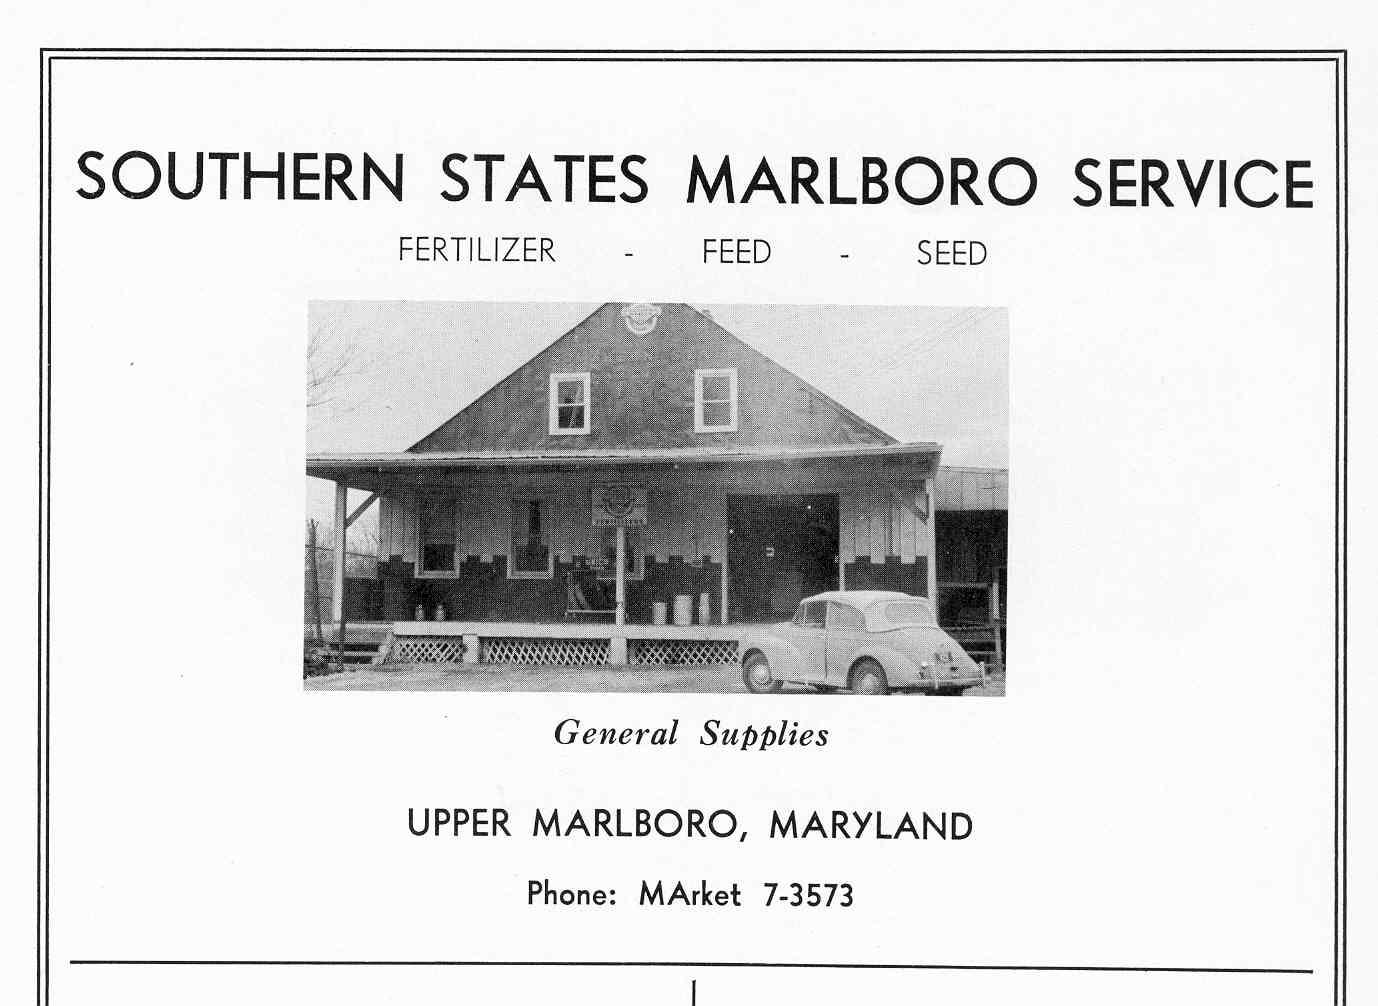 upper marlboro Upper marlboro, md – (301) 627-7575 home public buy/sell contact gen rules inventory auc run list (pdf) 45513-2006 gmc sierra 2500hd read more 45509-2008 dodge charger read more 45508-2002 honda accord read more 45507-1993 chevrolet c/k 3500 series read more 45510-2003 ford f-350 super duty.